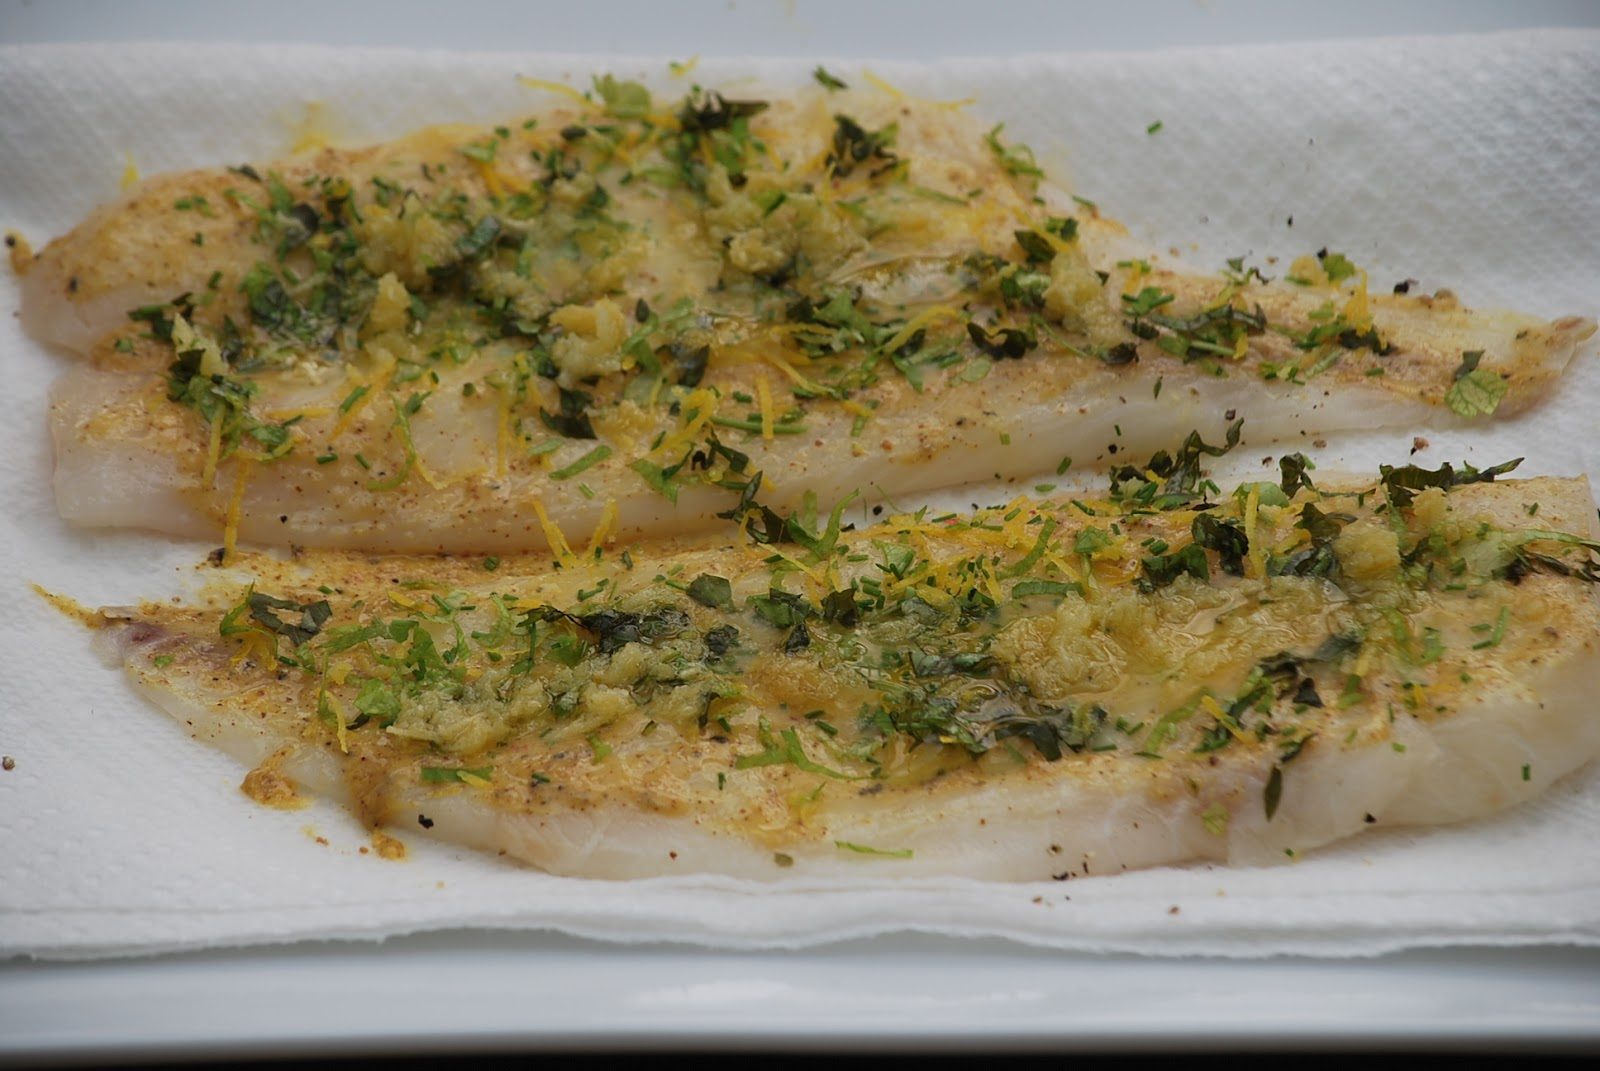 My story in recipes: Orange Roughy